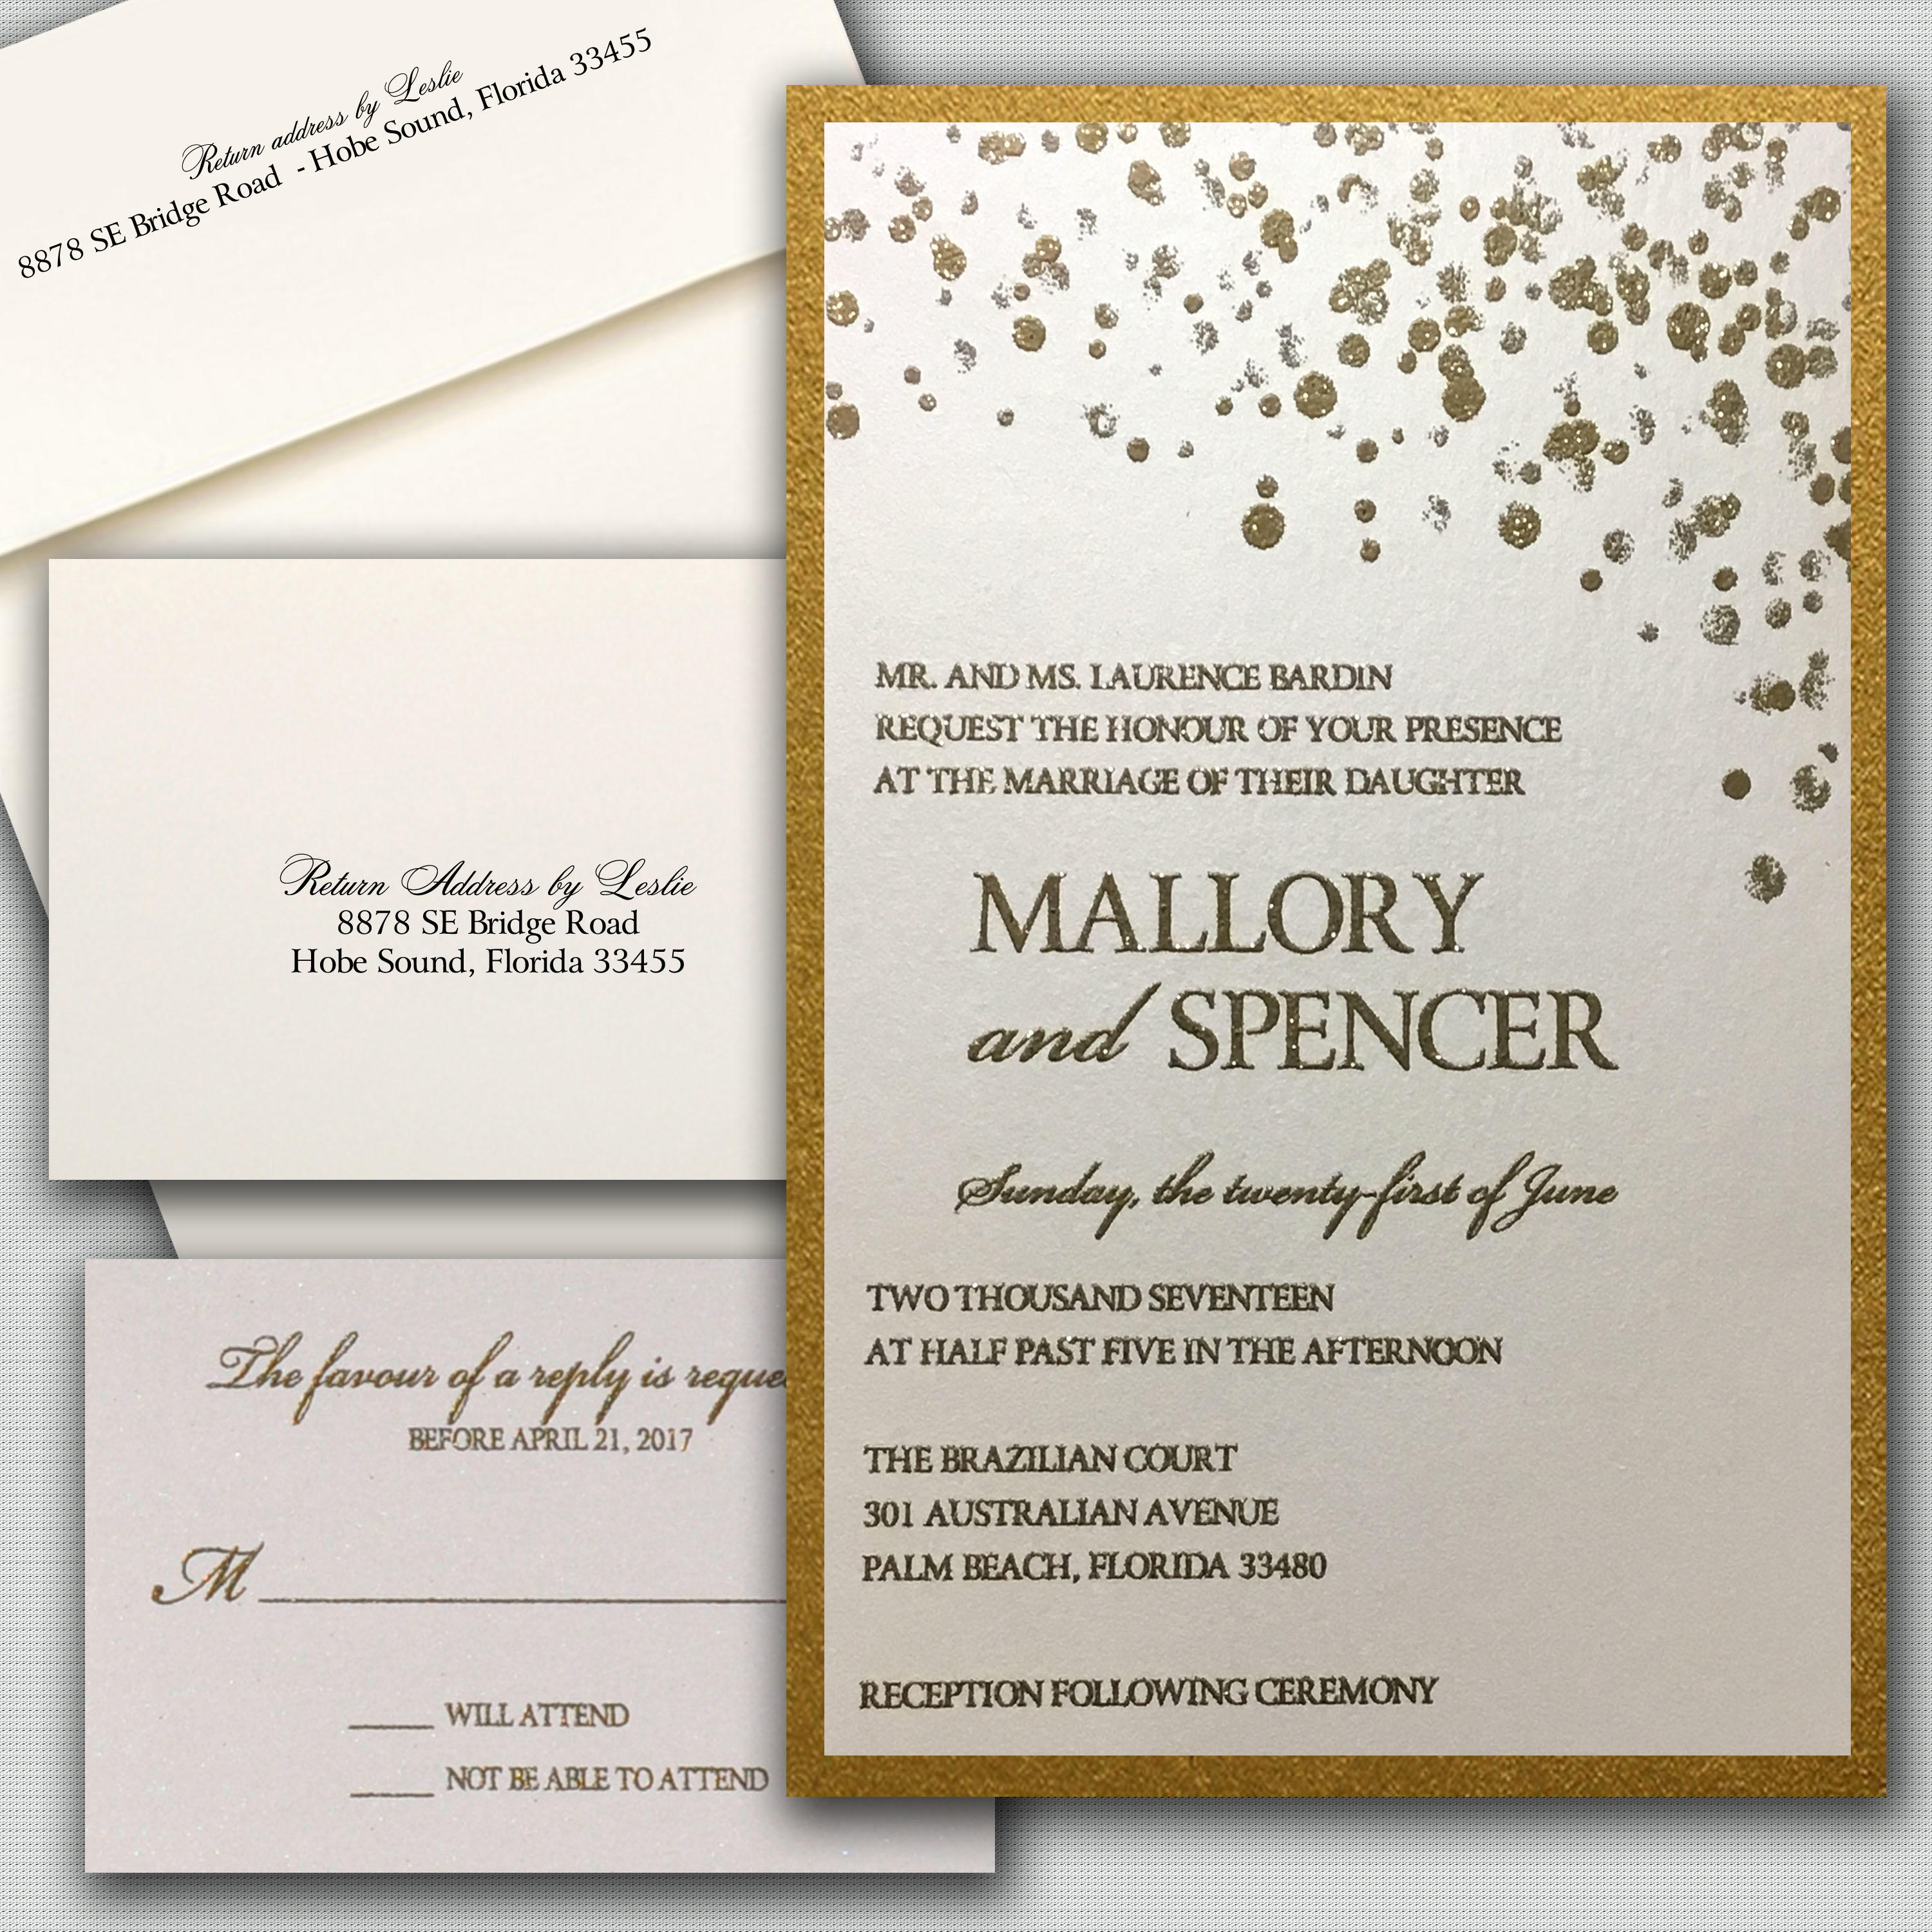 Leslie Store Wedding Invitations & Stationery image 12